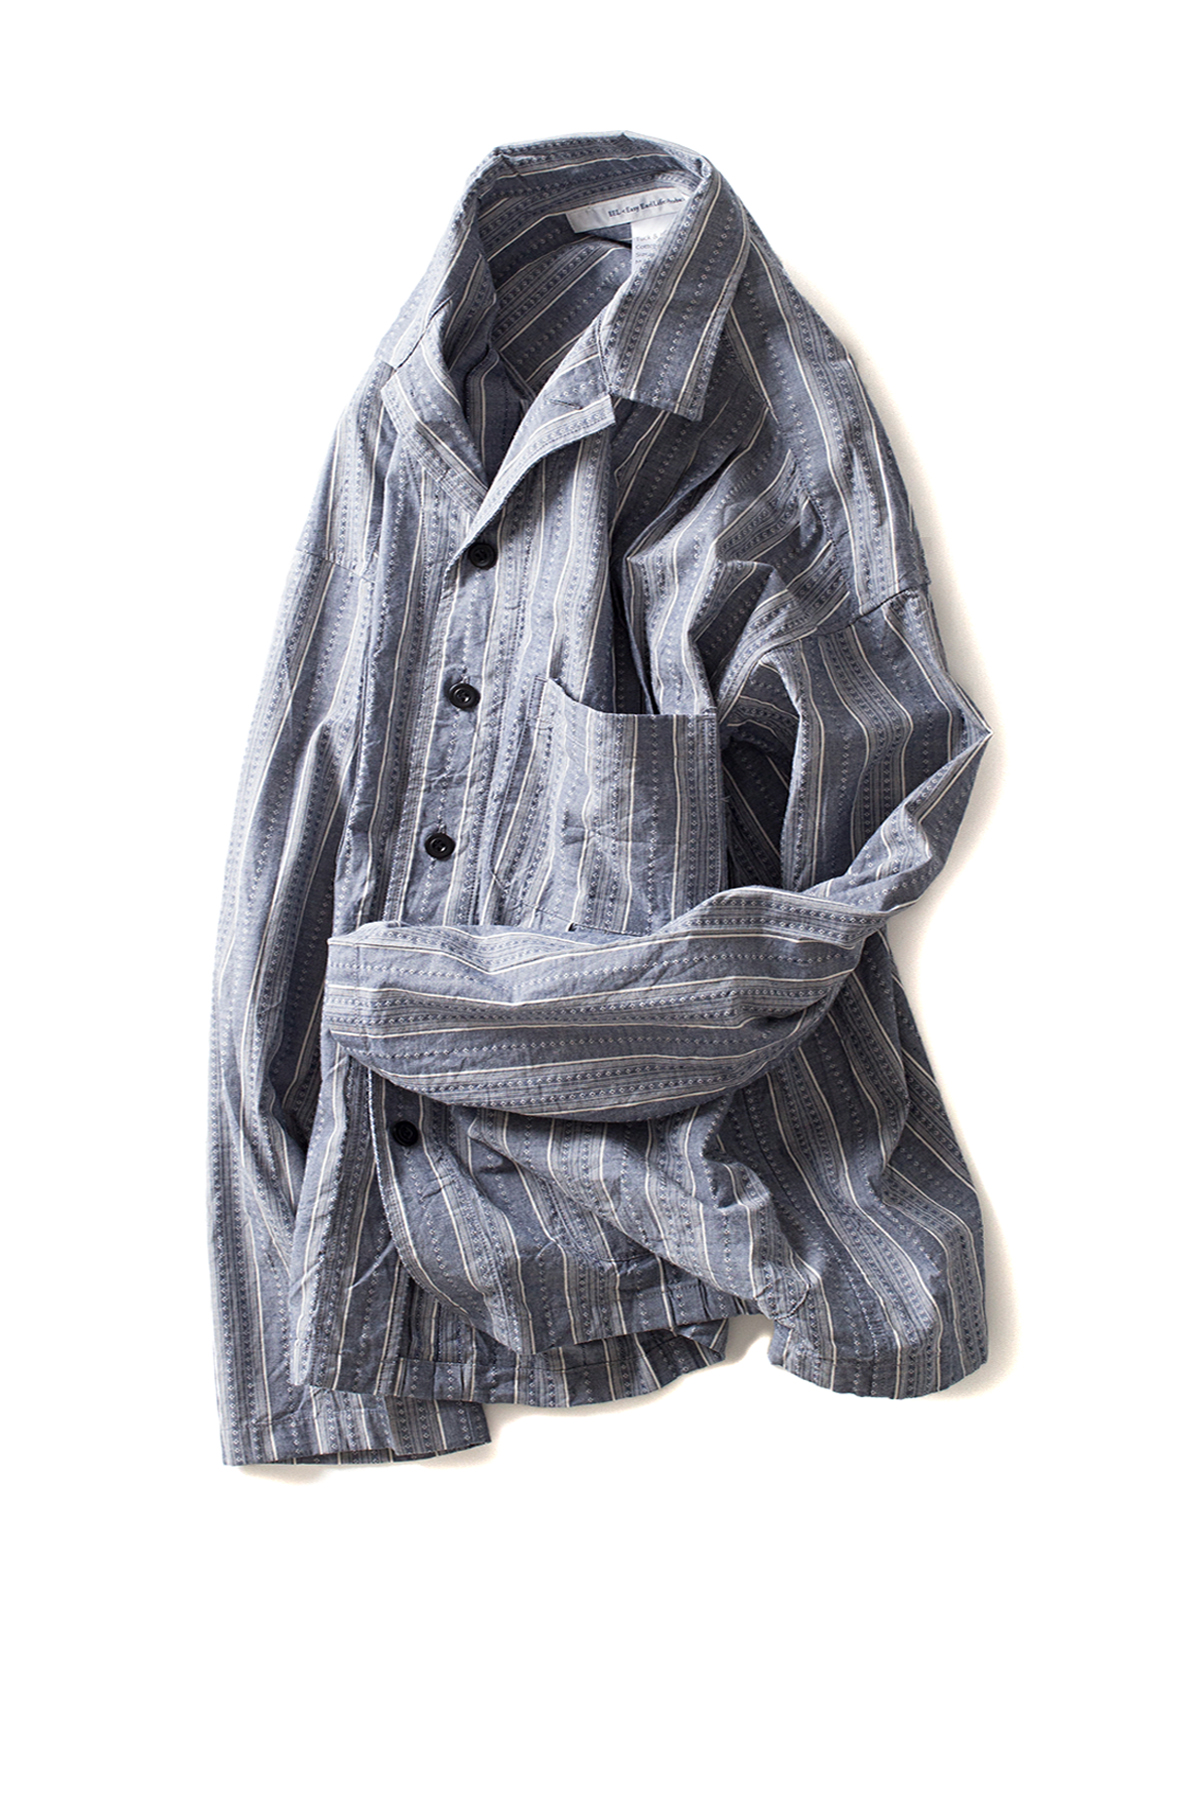 EEL : Tuck & Male Shirt Jacket (Sax Stripe)